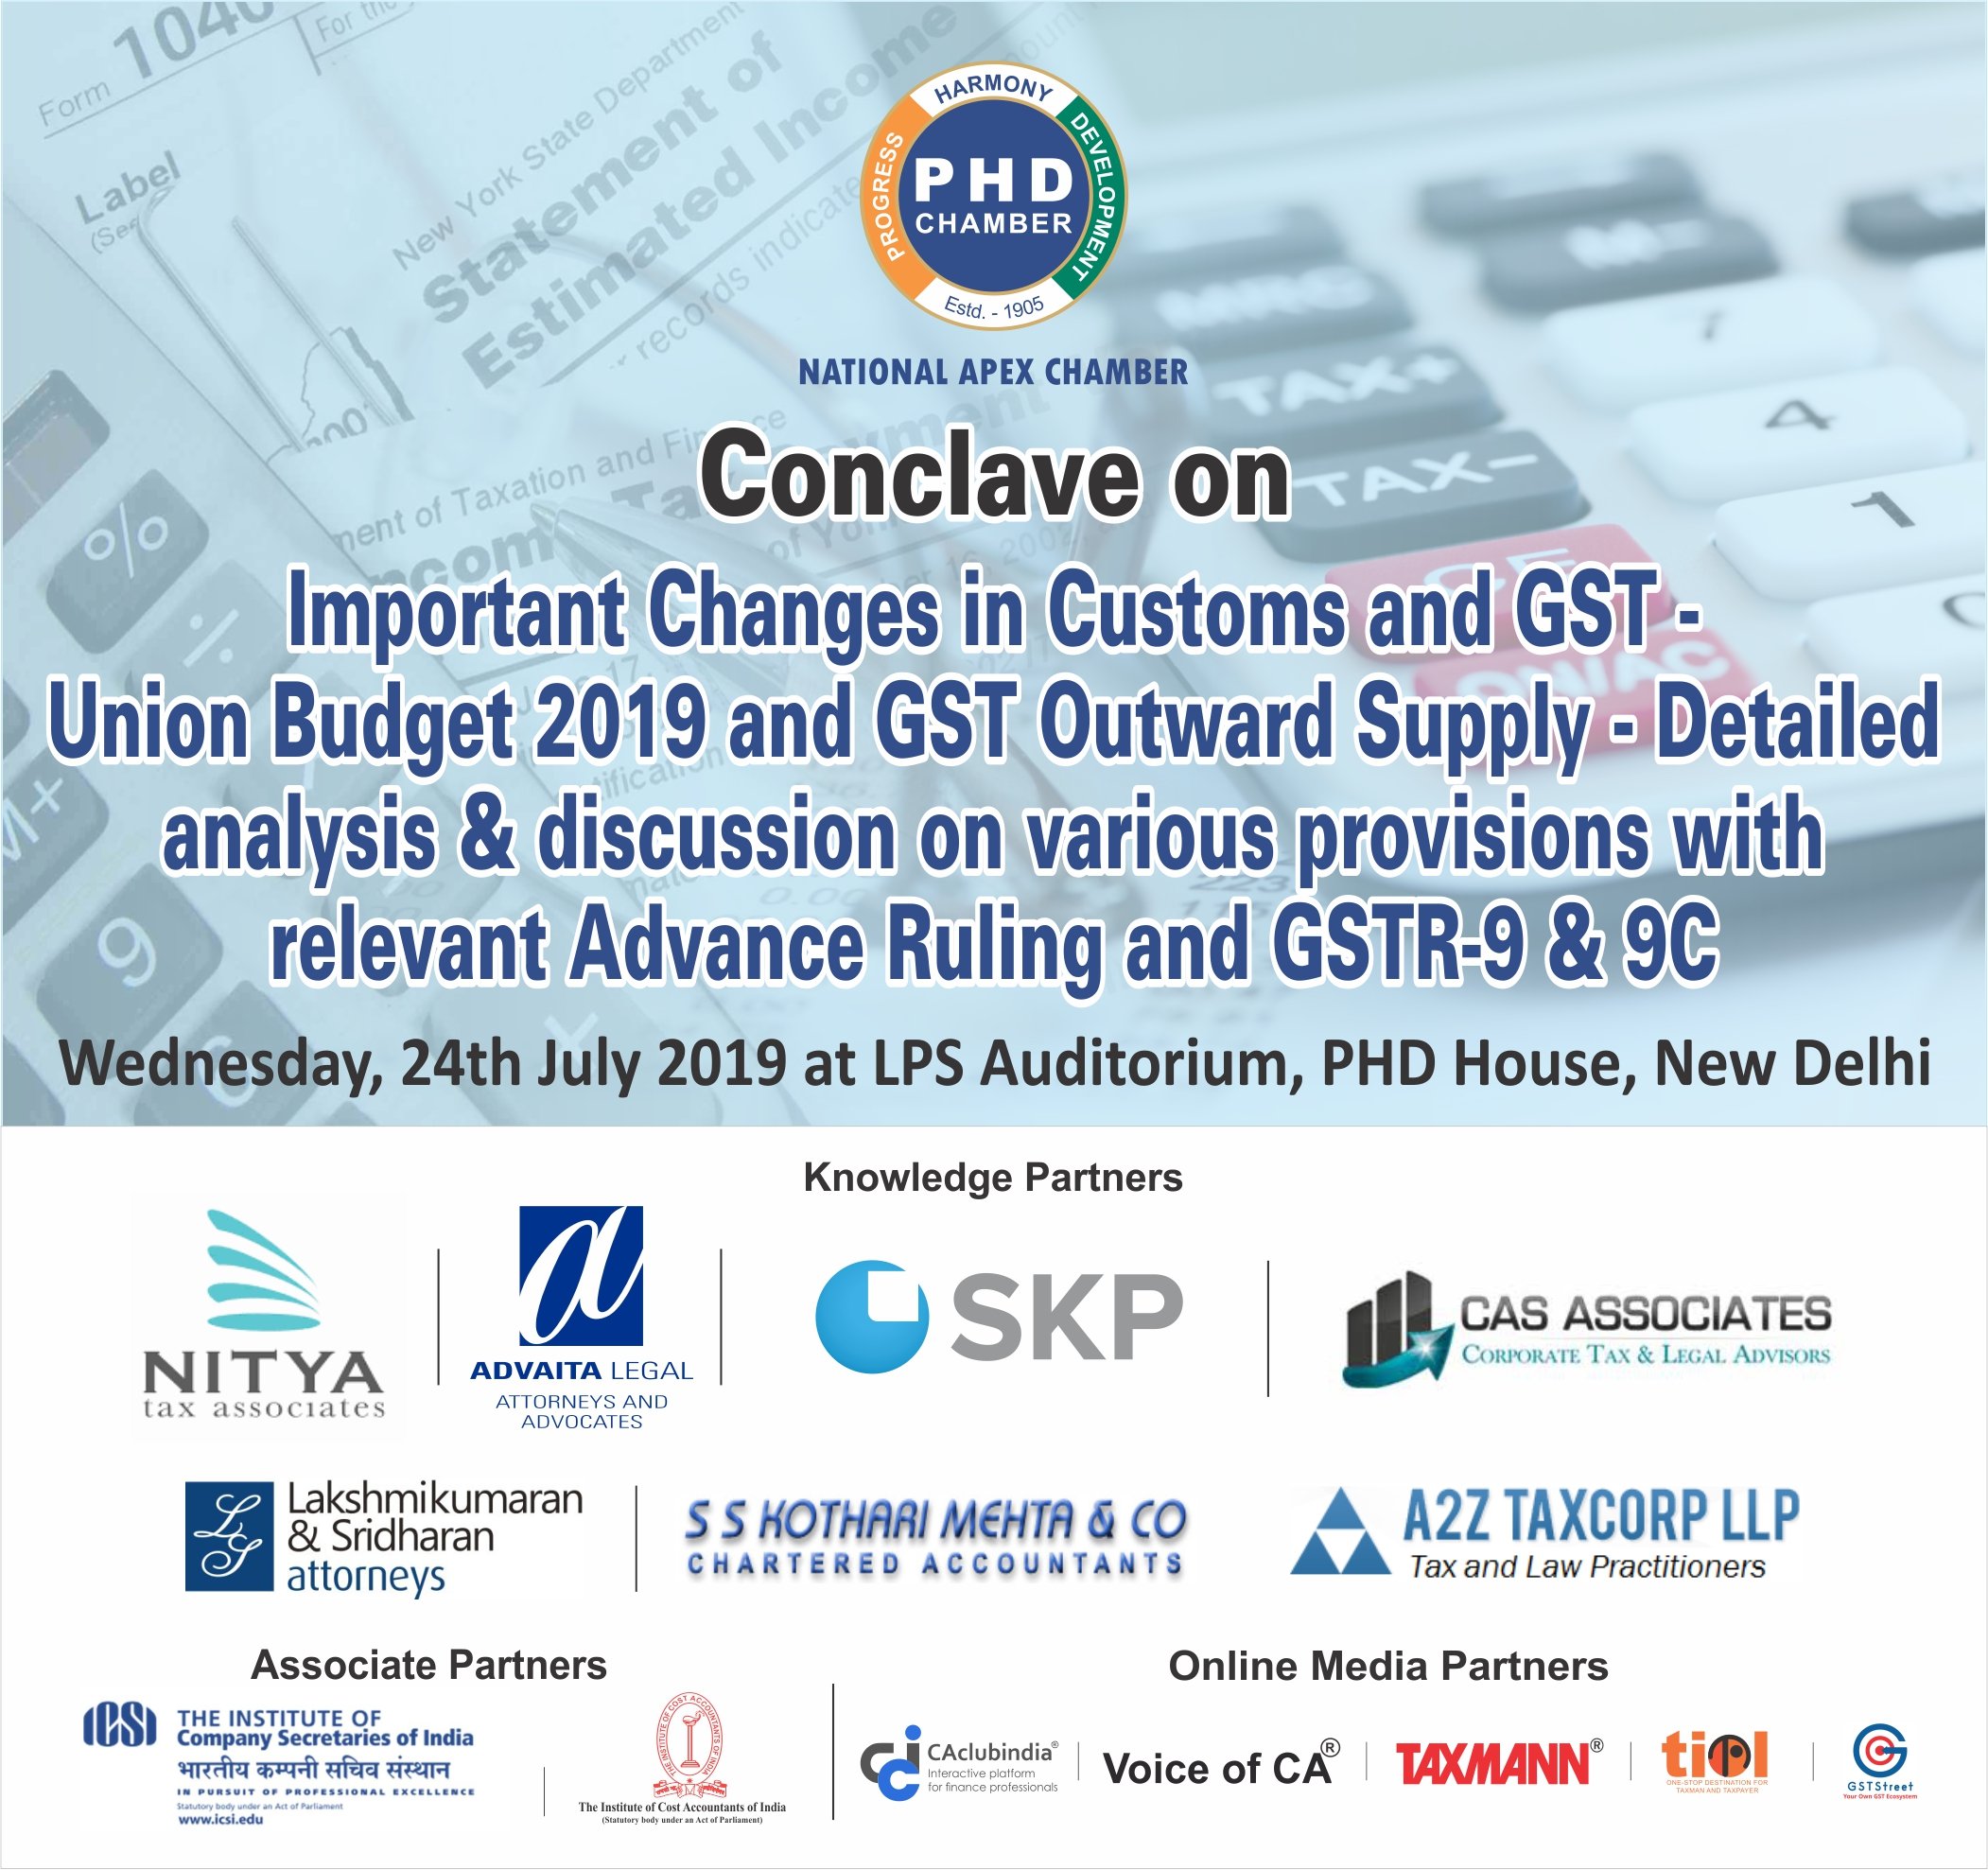 Important Changes in Customs and GST – Union Budget 2019 and GST Outward Supply – Detailed analysis & discussion on various provisions with relevant Advance Ruling and GSTR-9 & 9C